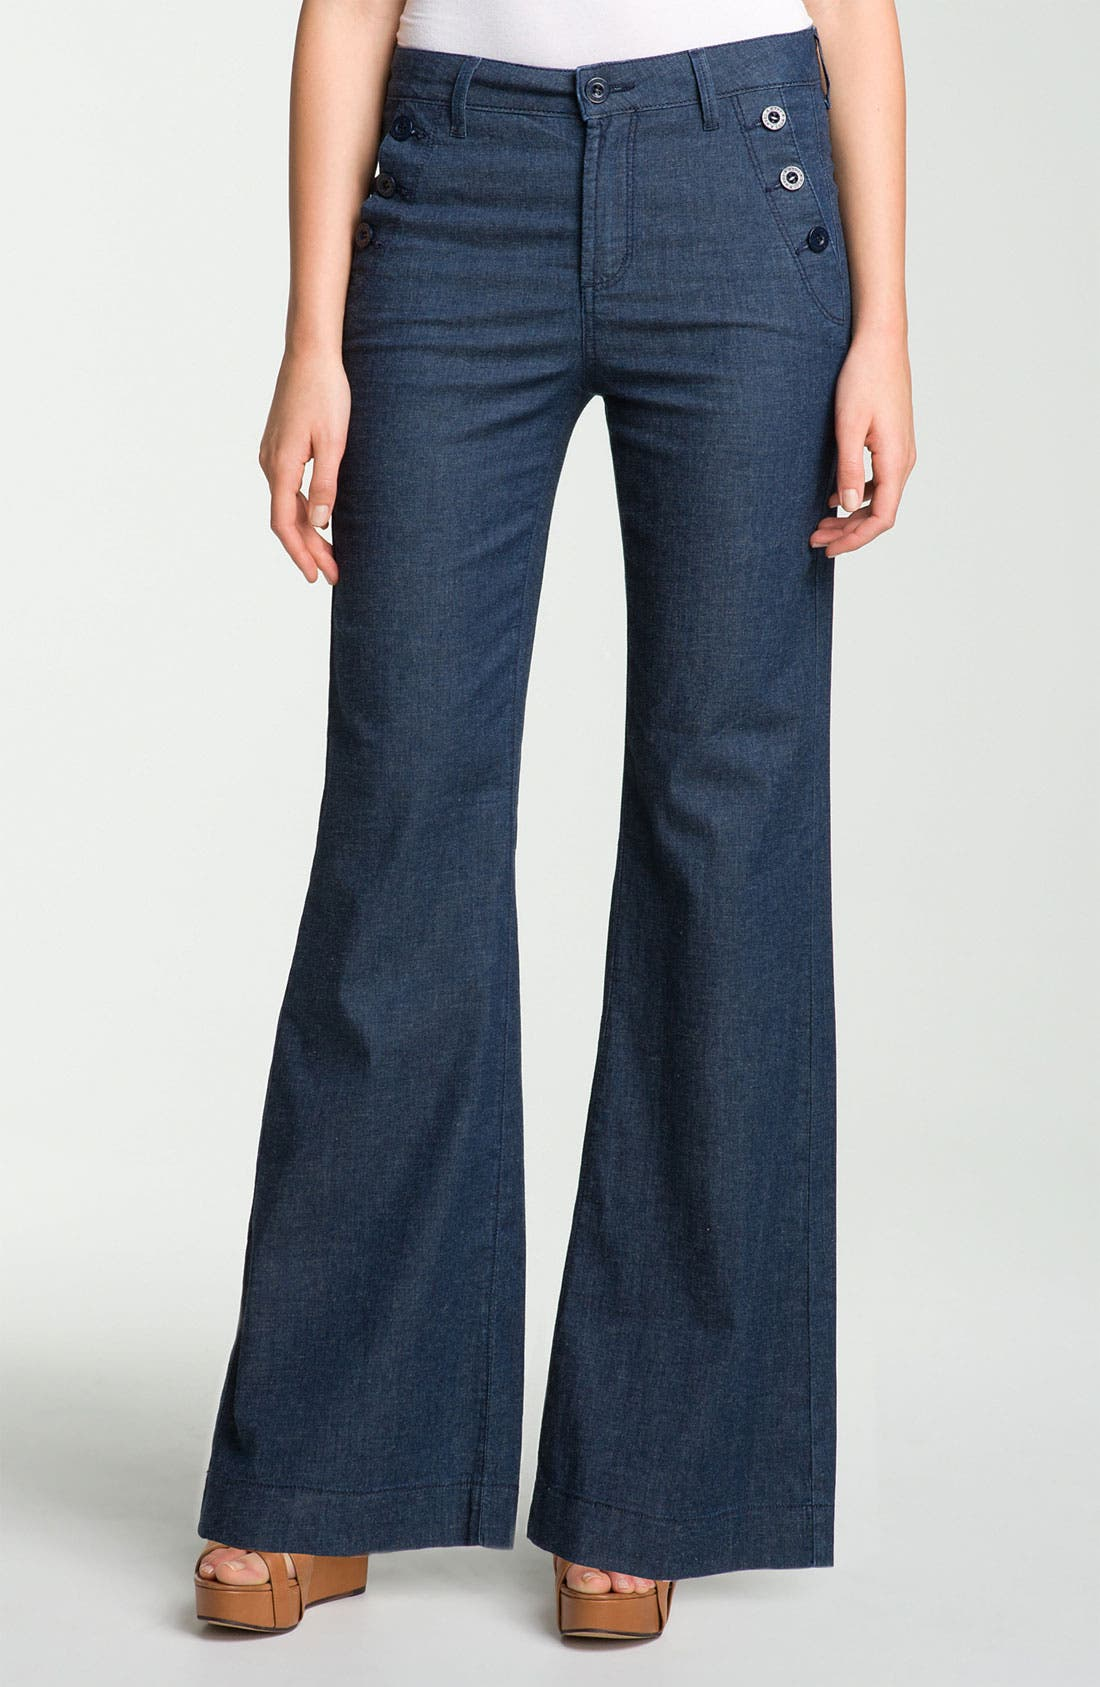 Alternate Image 1 Selected - NYDJ 'Tina Sailor' Wide Leg Jeans (Petite)